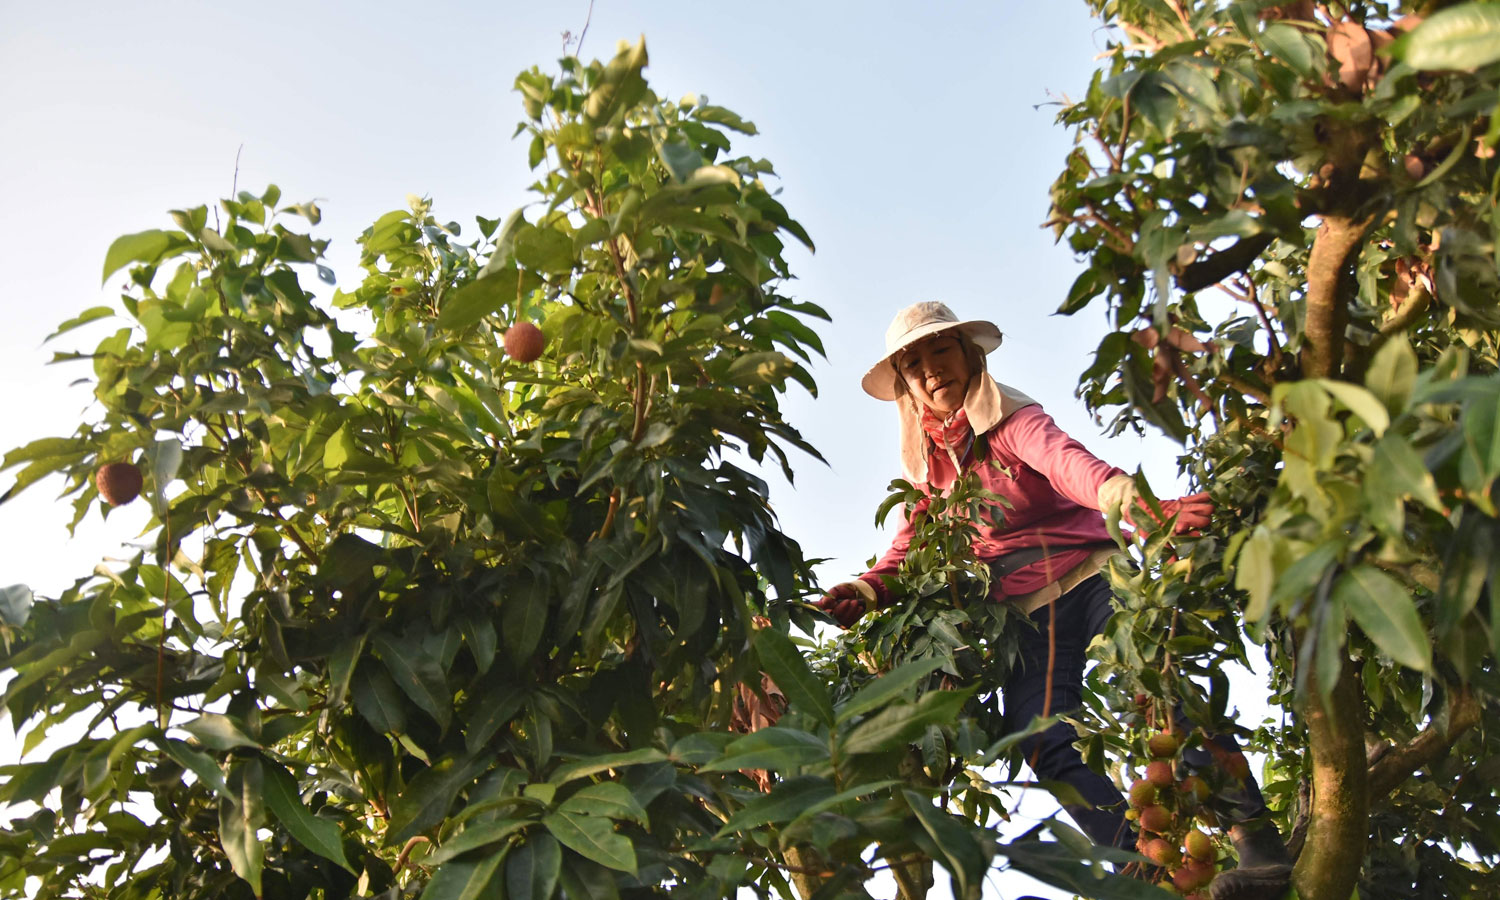 Harvesting lychees. (©Urban Development Bureau, Kaohsiung City Government, Taiwan)